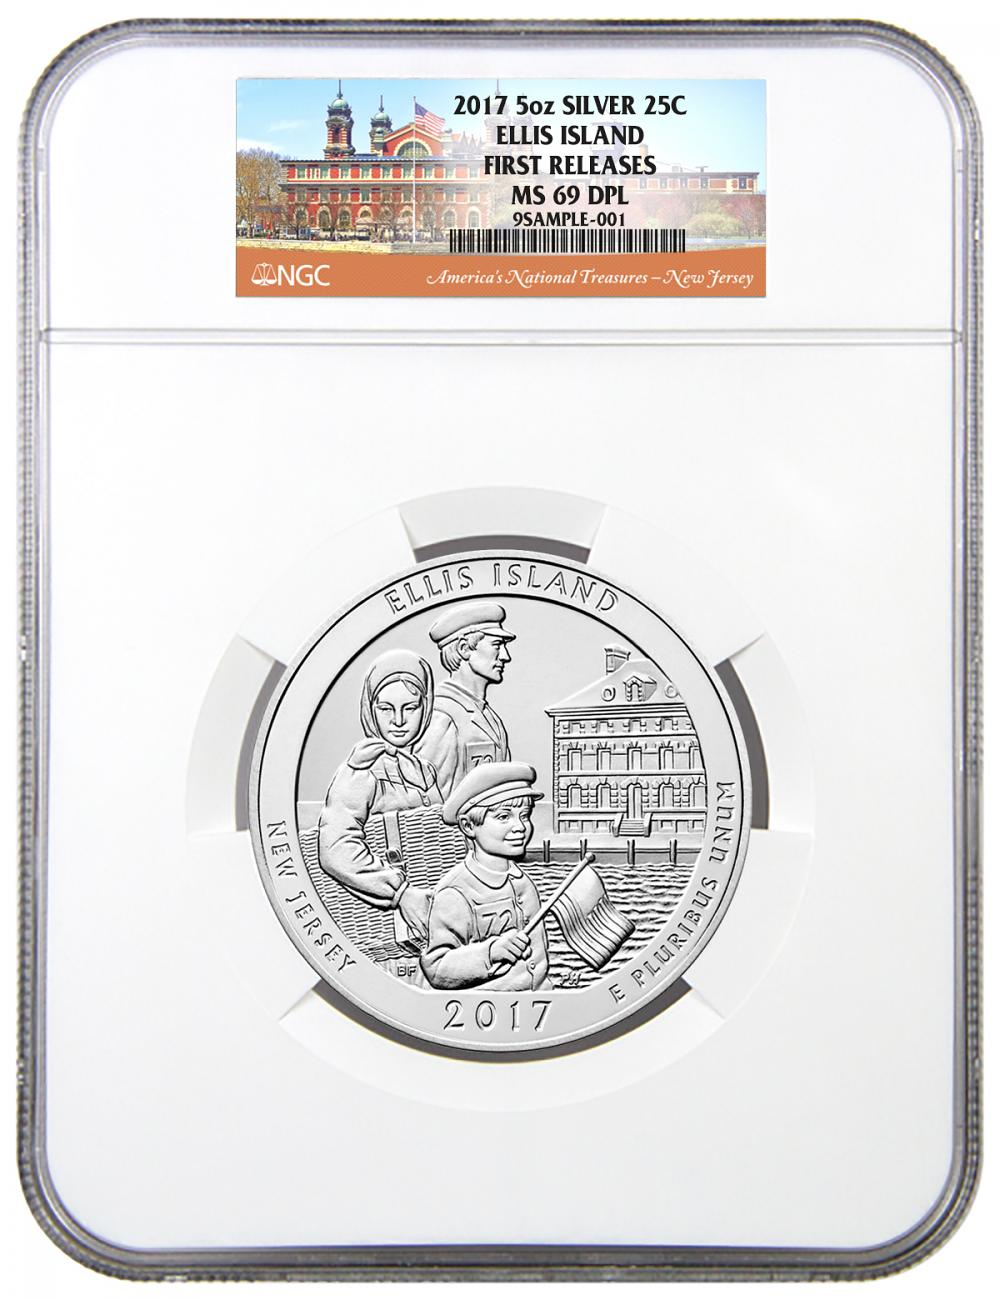 2017 Ellis Island 5 oz. Silver America the Beautiful Coin NGC MS69 DPL FR